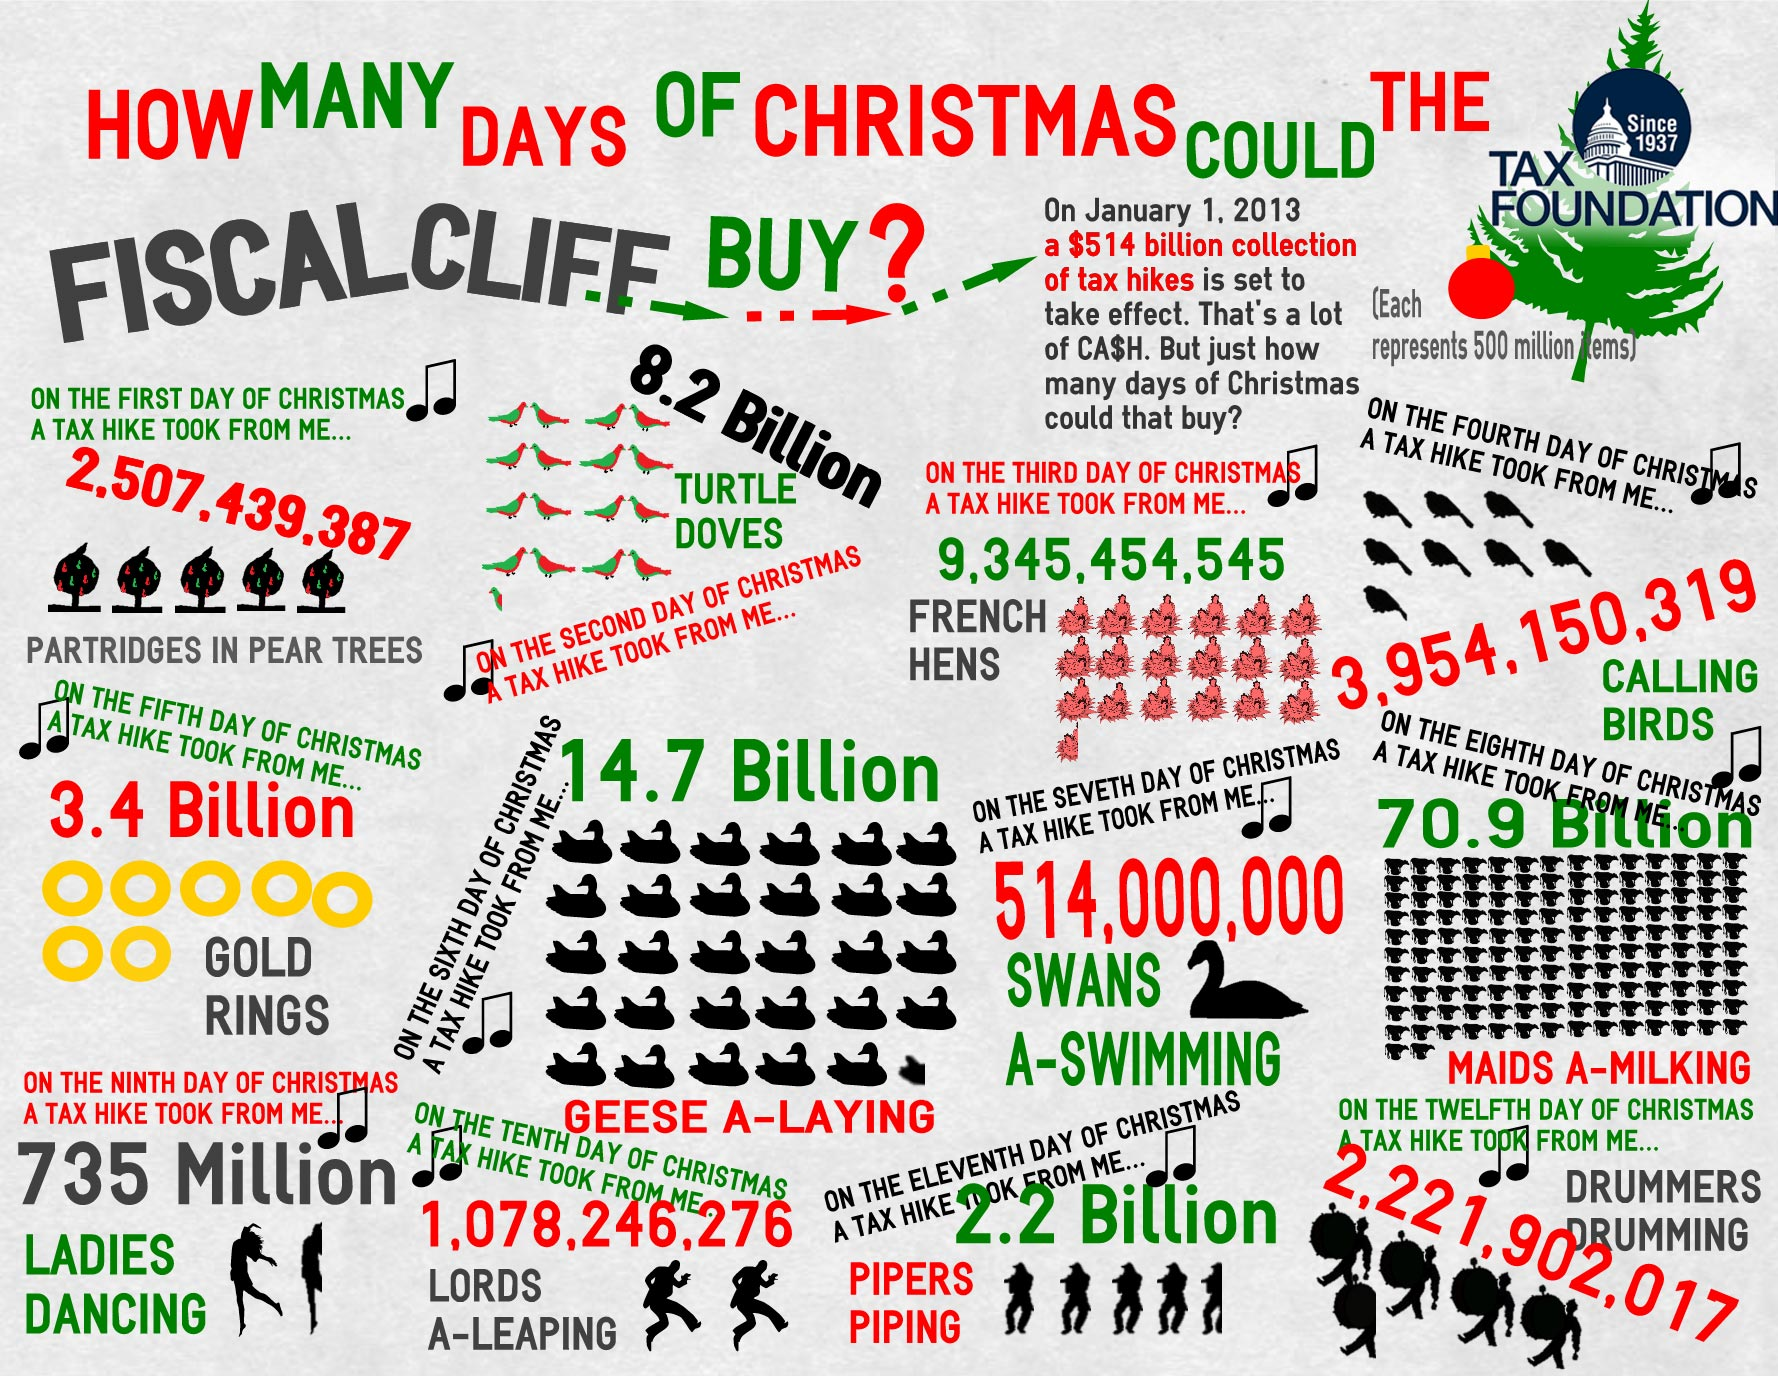 how many days of christmas could the fiscal cliff buy - How Many Days Christmas